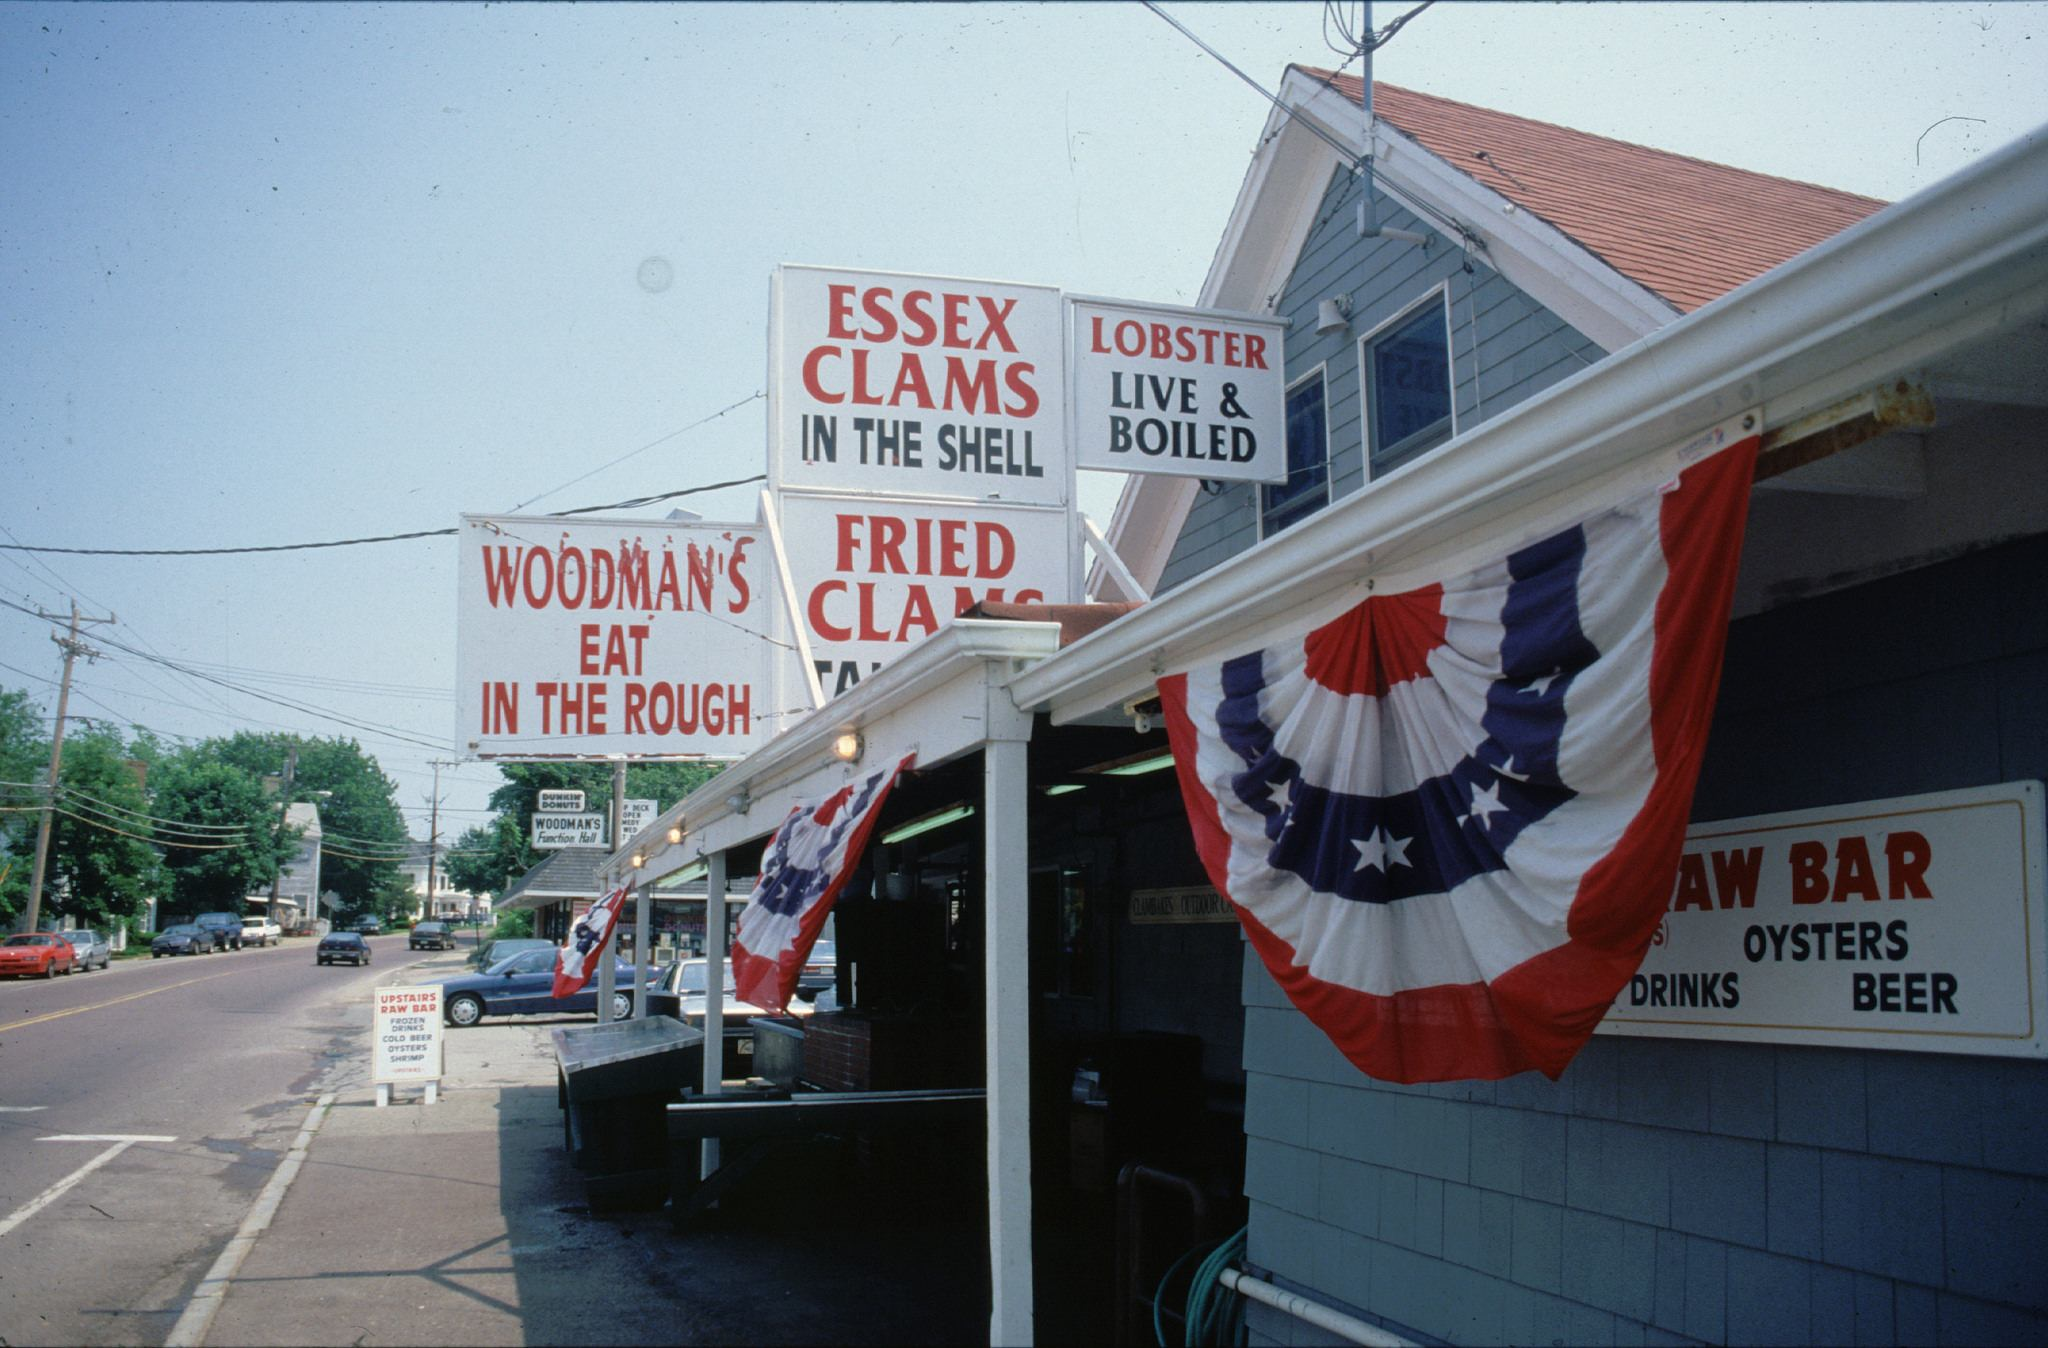 Woodman's, a classic seafood restaurant in Essex, Mass., is the birthplace of the fried clam.